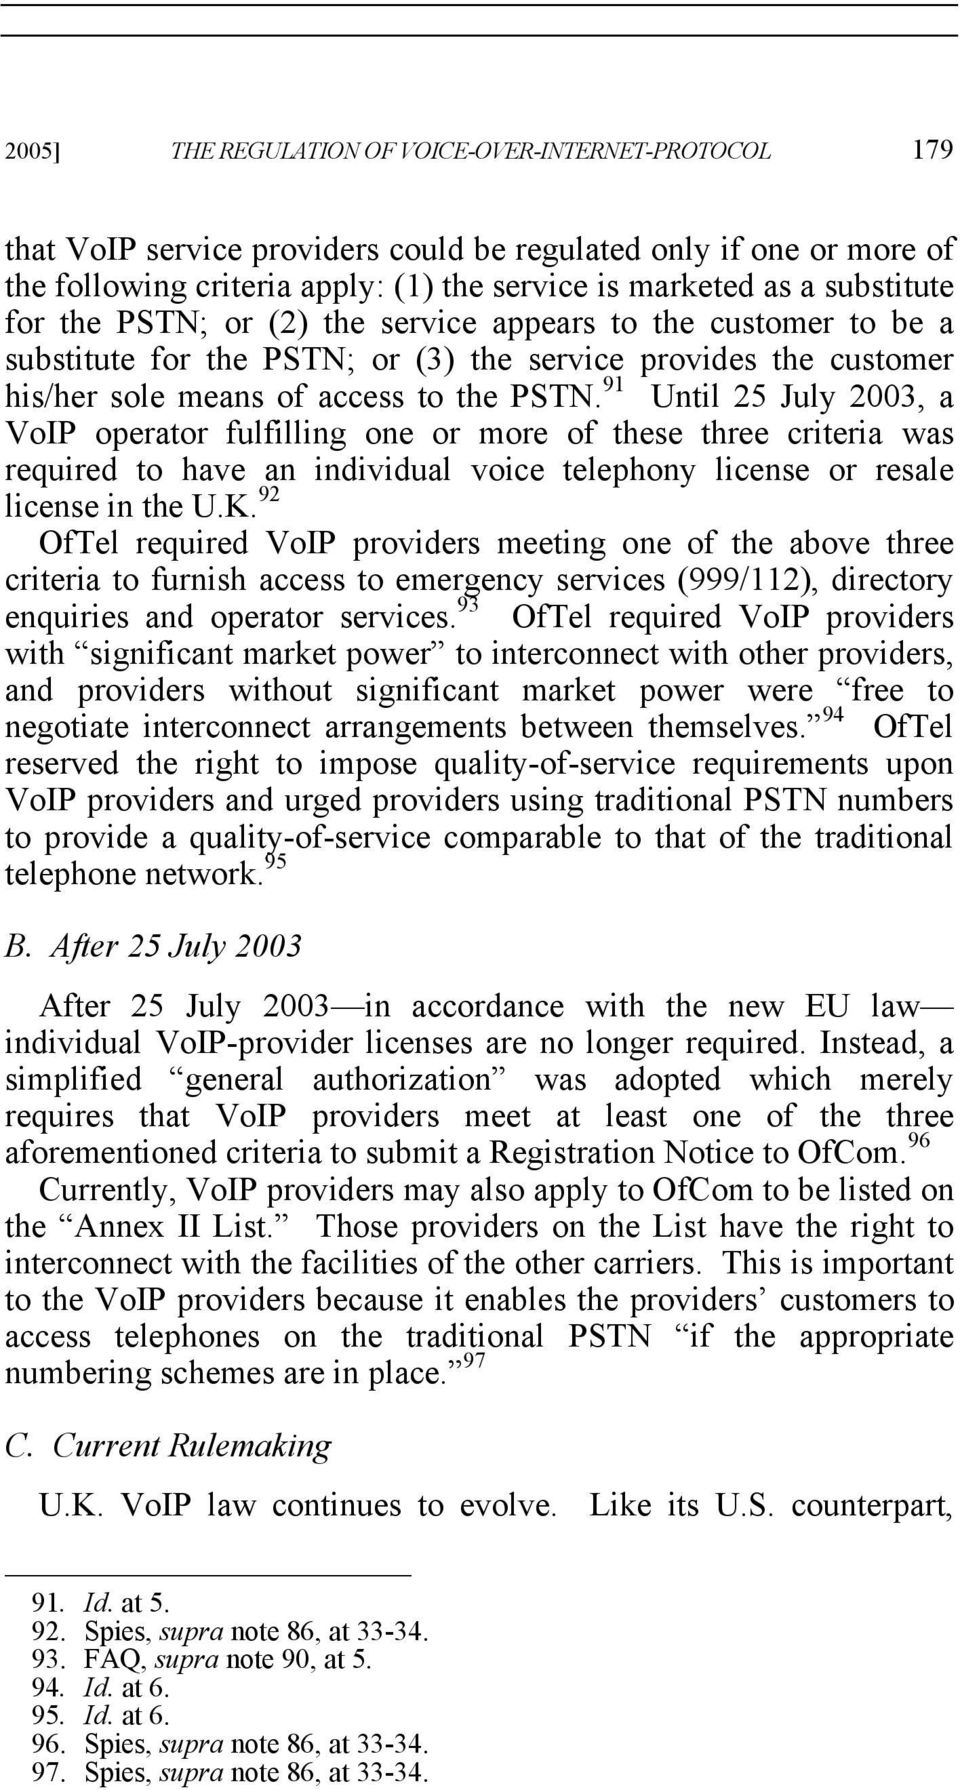 91 Until 25 July 2003, a VoIP operator fulfilling one or more of these three criteria was required to have an individual voice telephony license or resale license in the U.K.